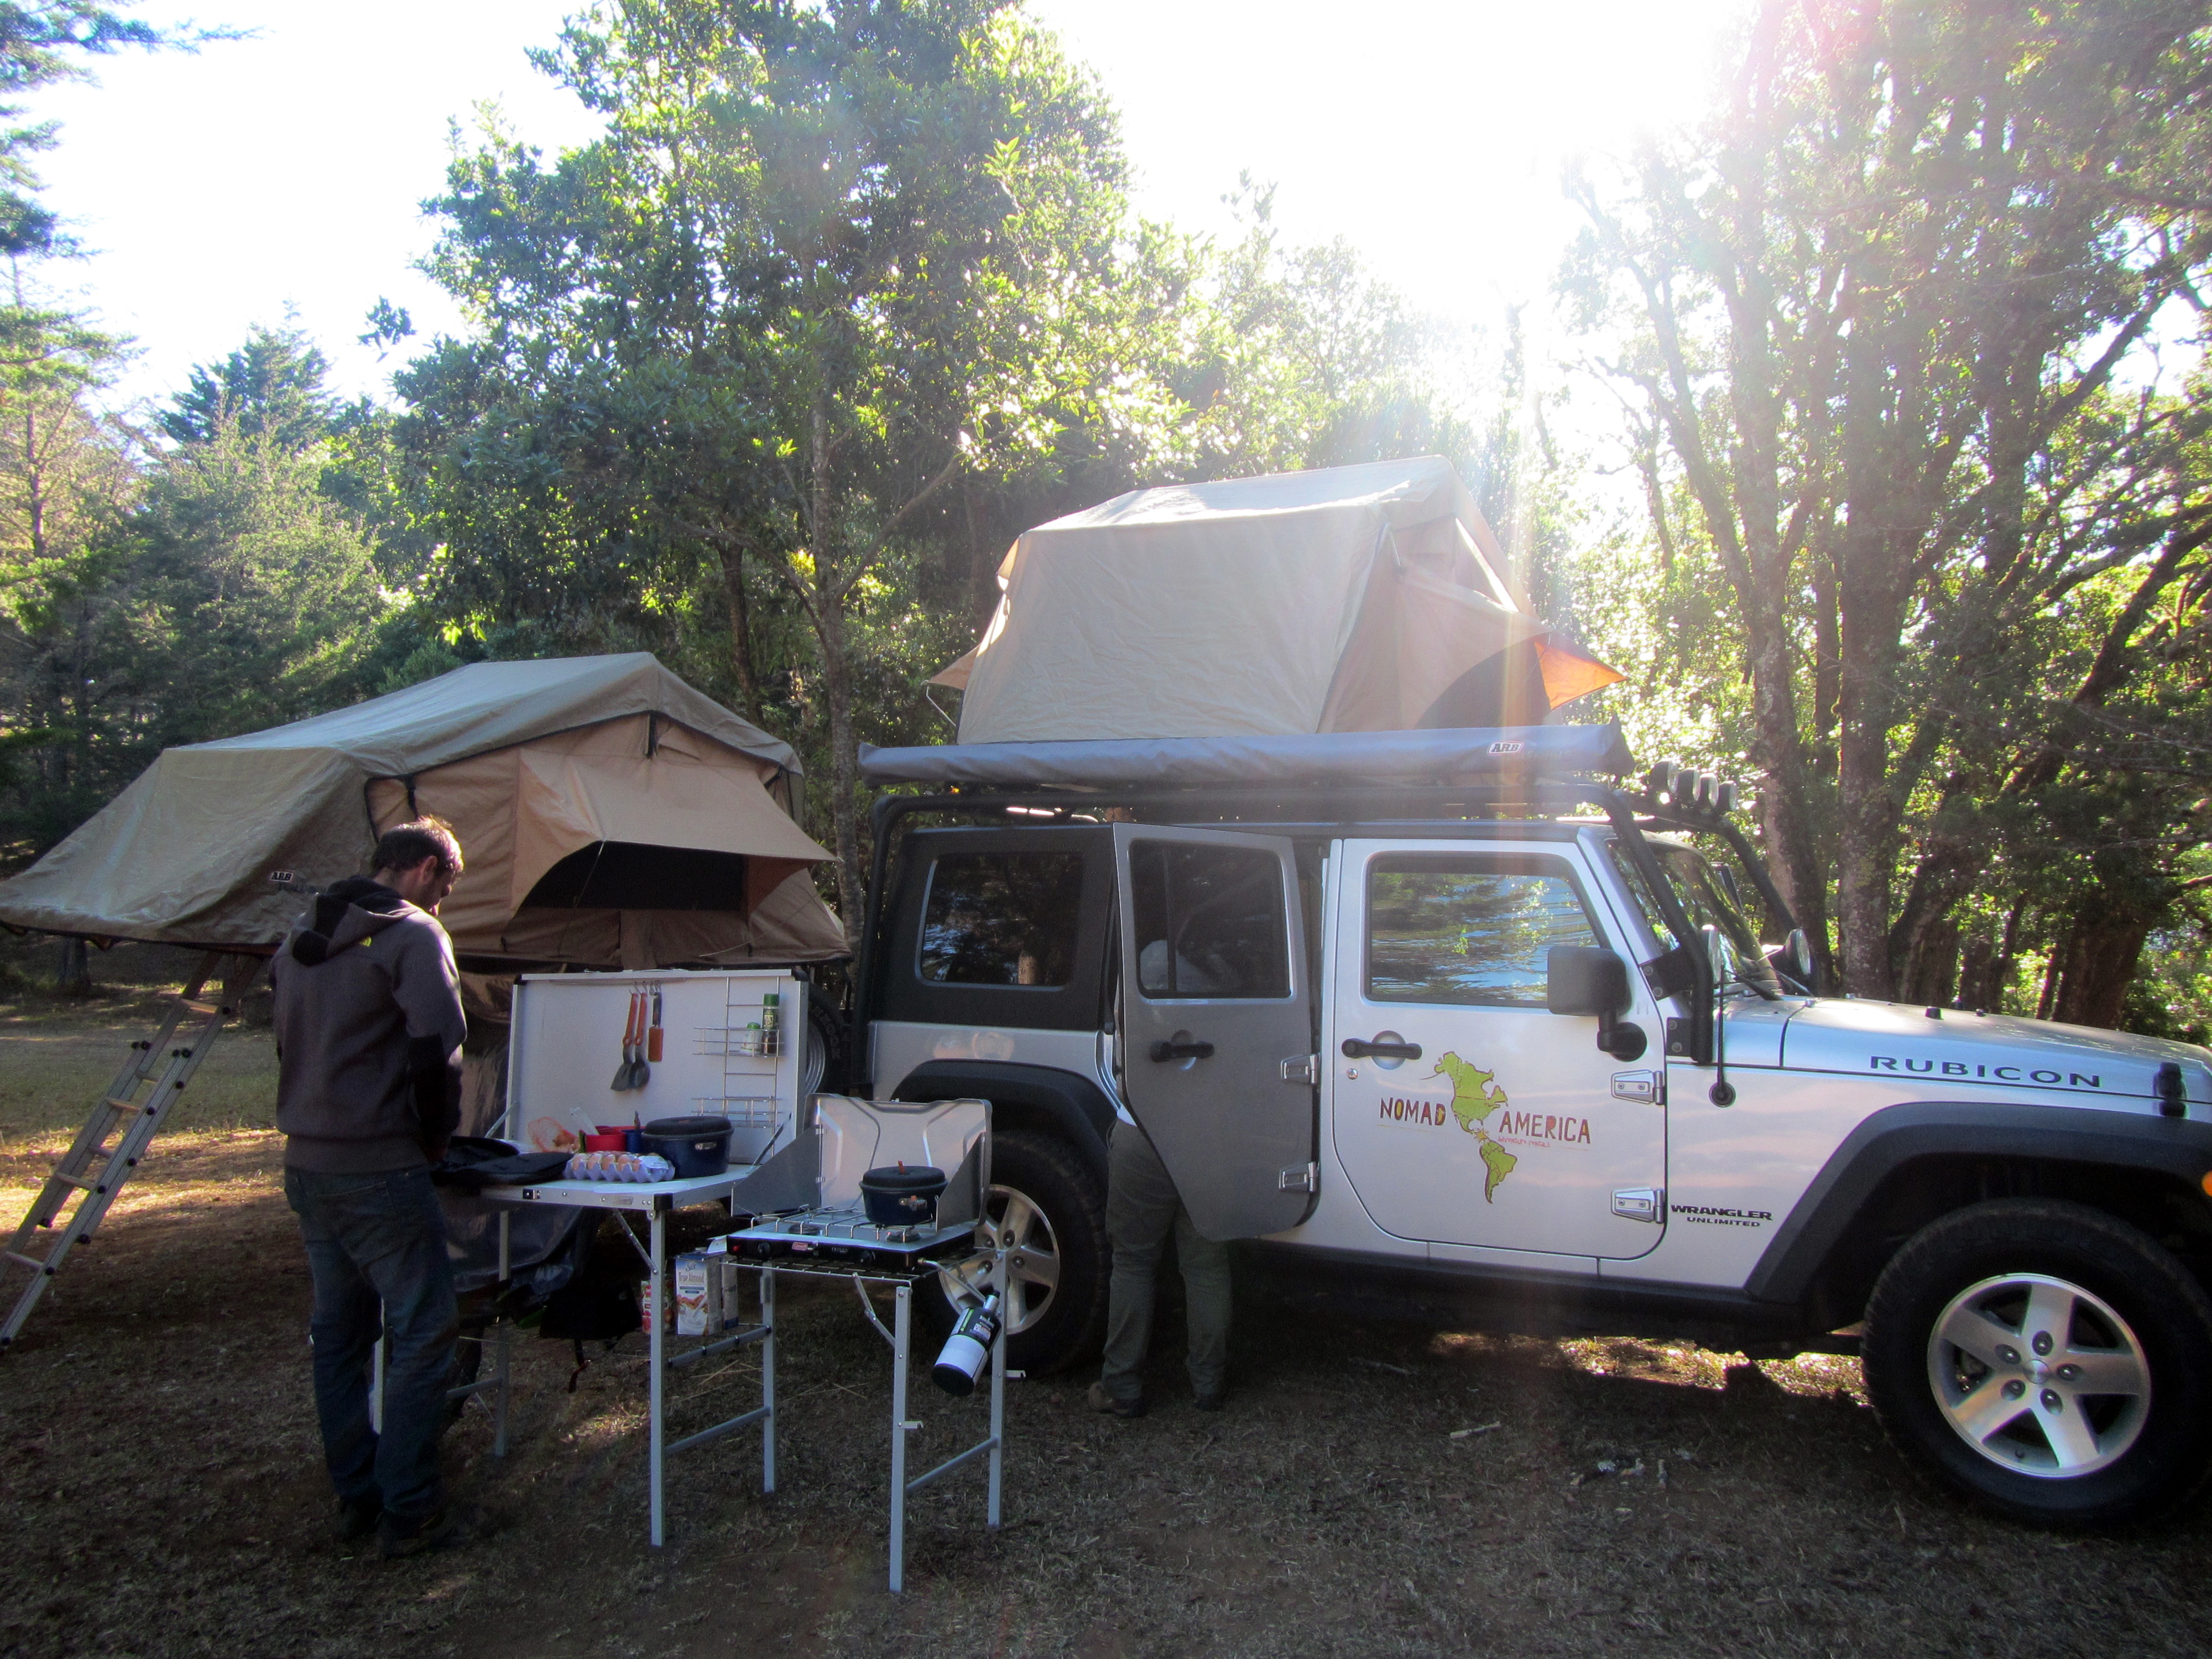 Jeep Wrangler Rooftop tent Costa Rica & Jeep Wrangler Rooftop tent Costa Rica | Jeep Rentals - Jeep Tours ...